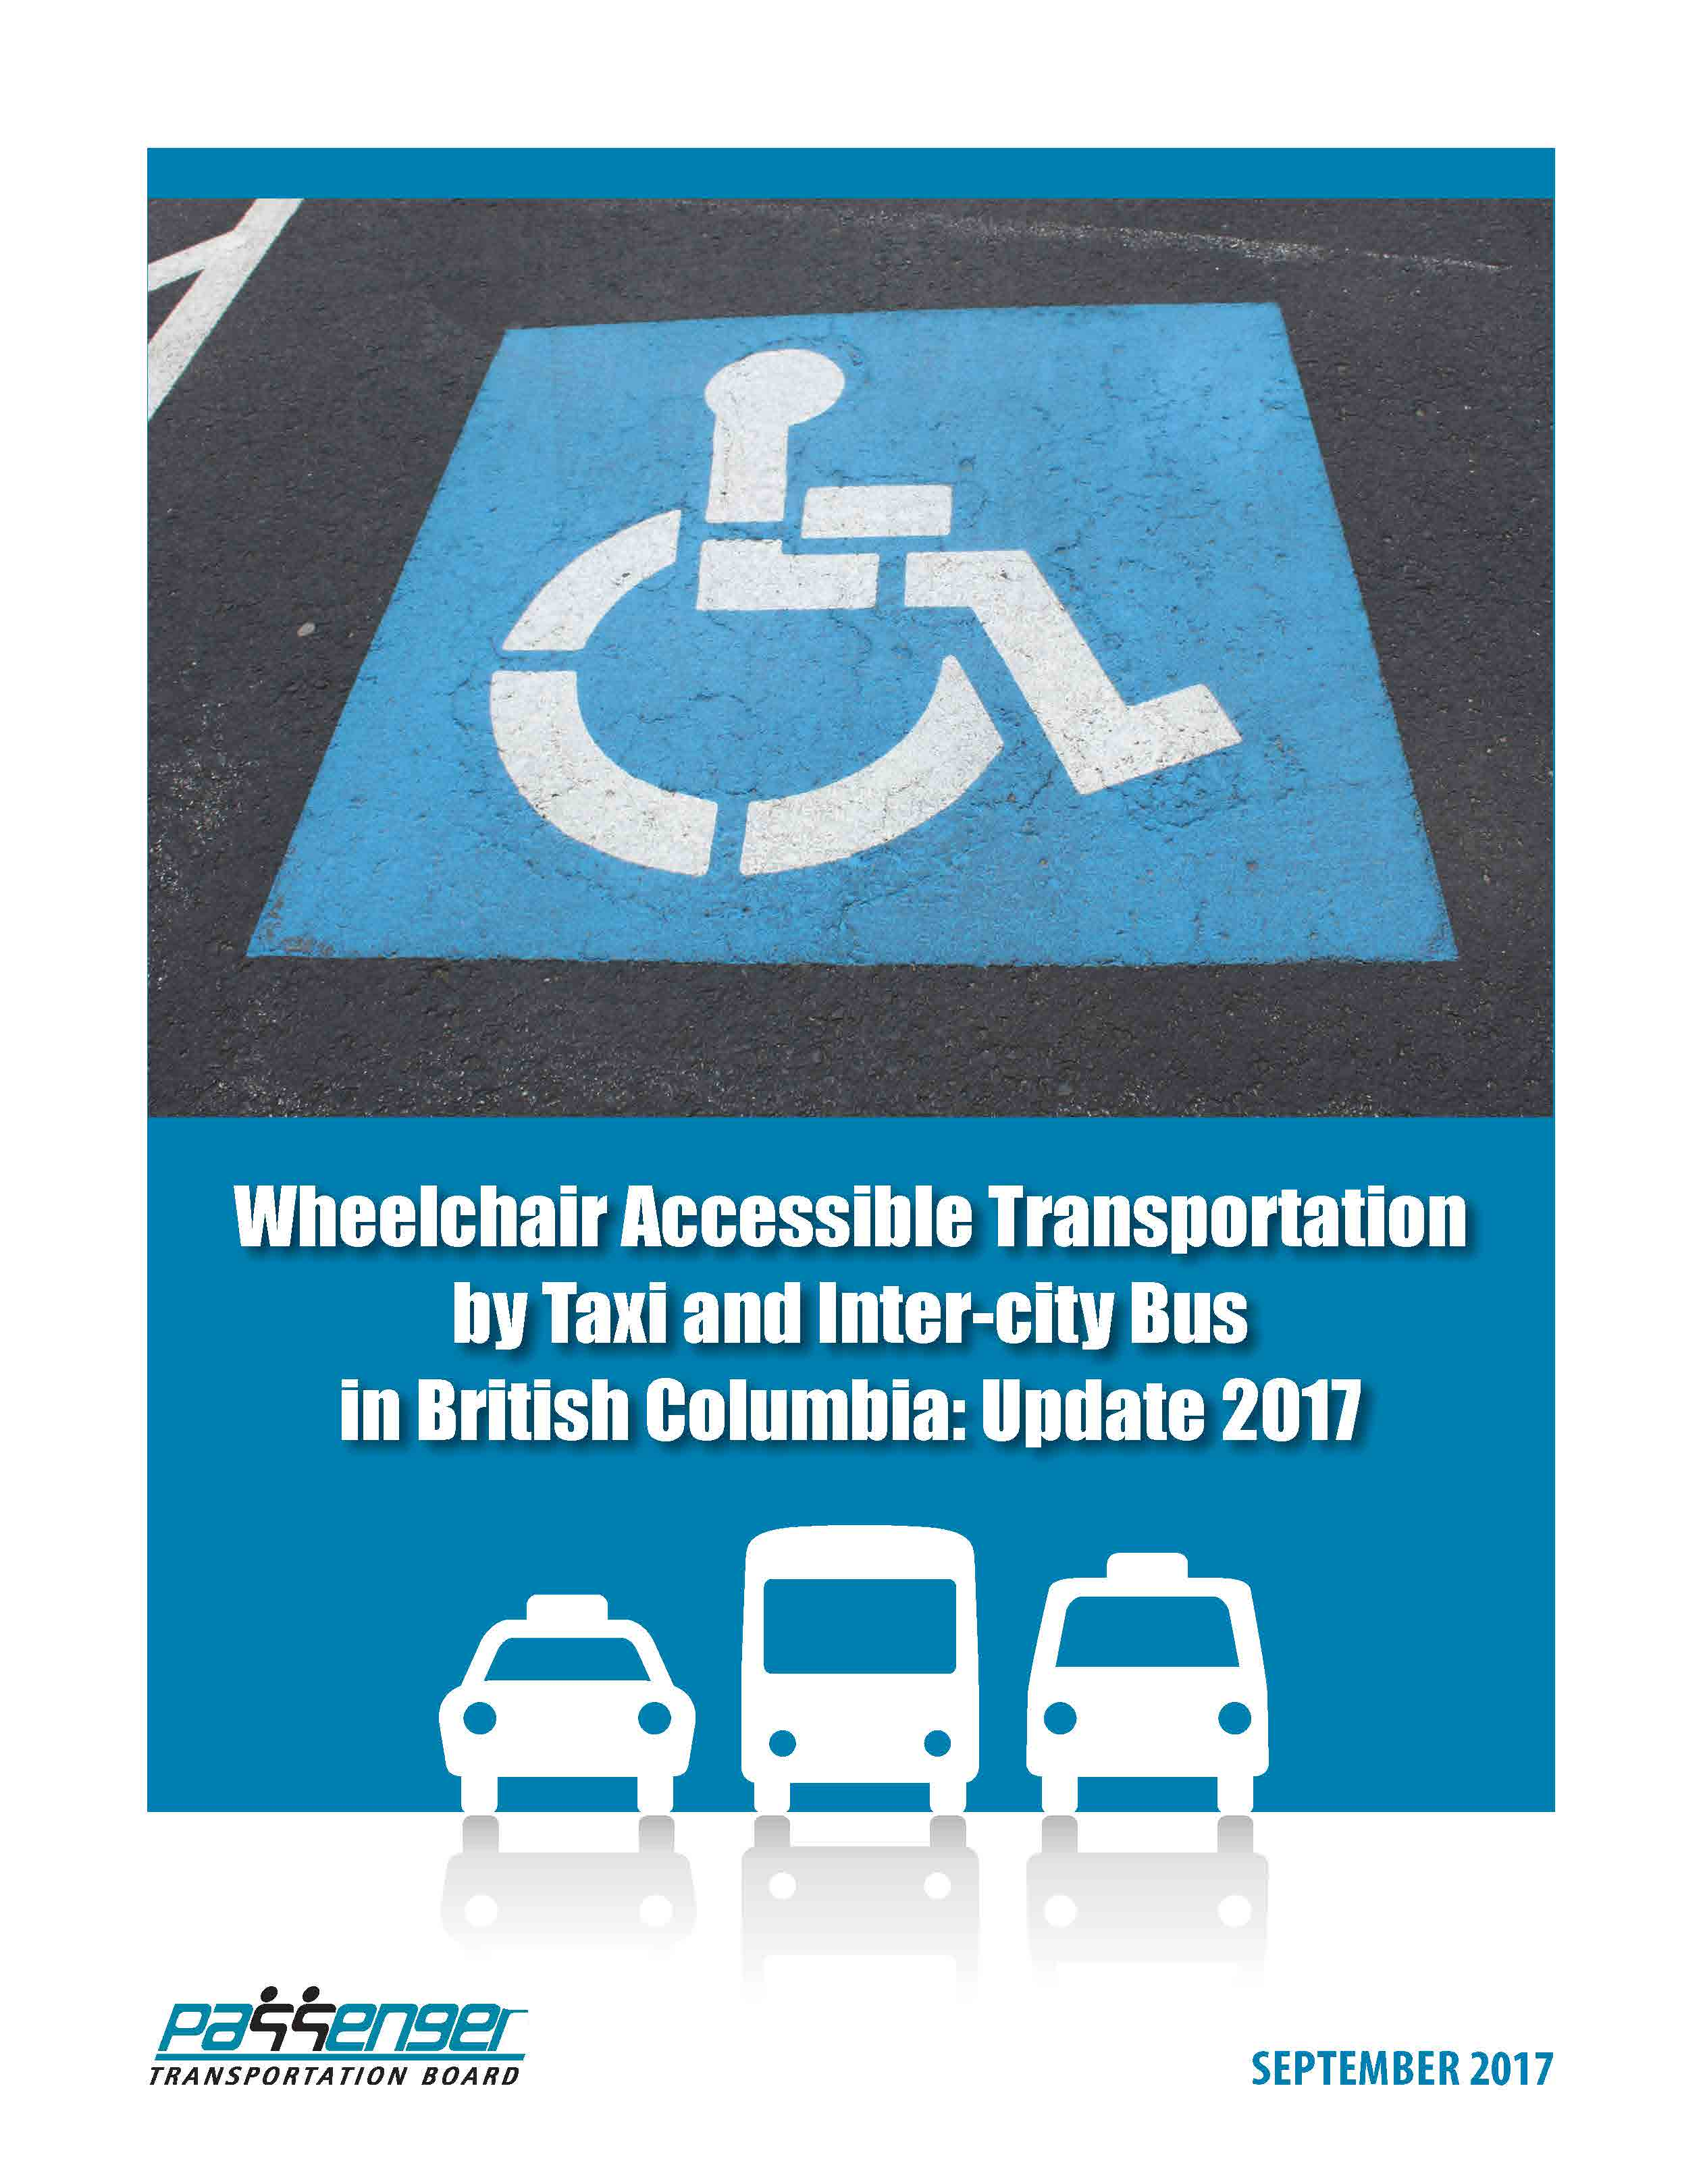 Wheelchair Accessible Transportation by Taxi and Inter-city Bus in British Columbia: Update 2017